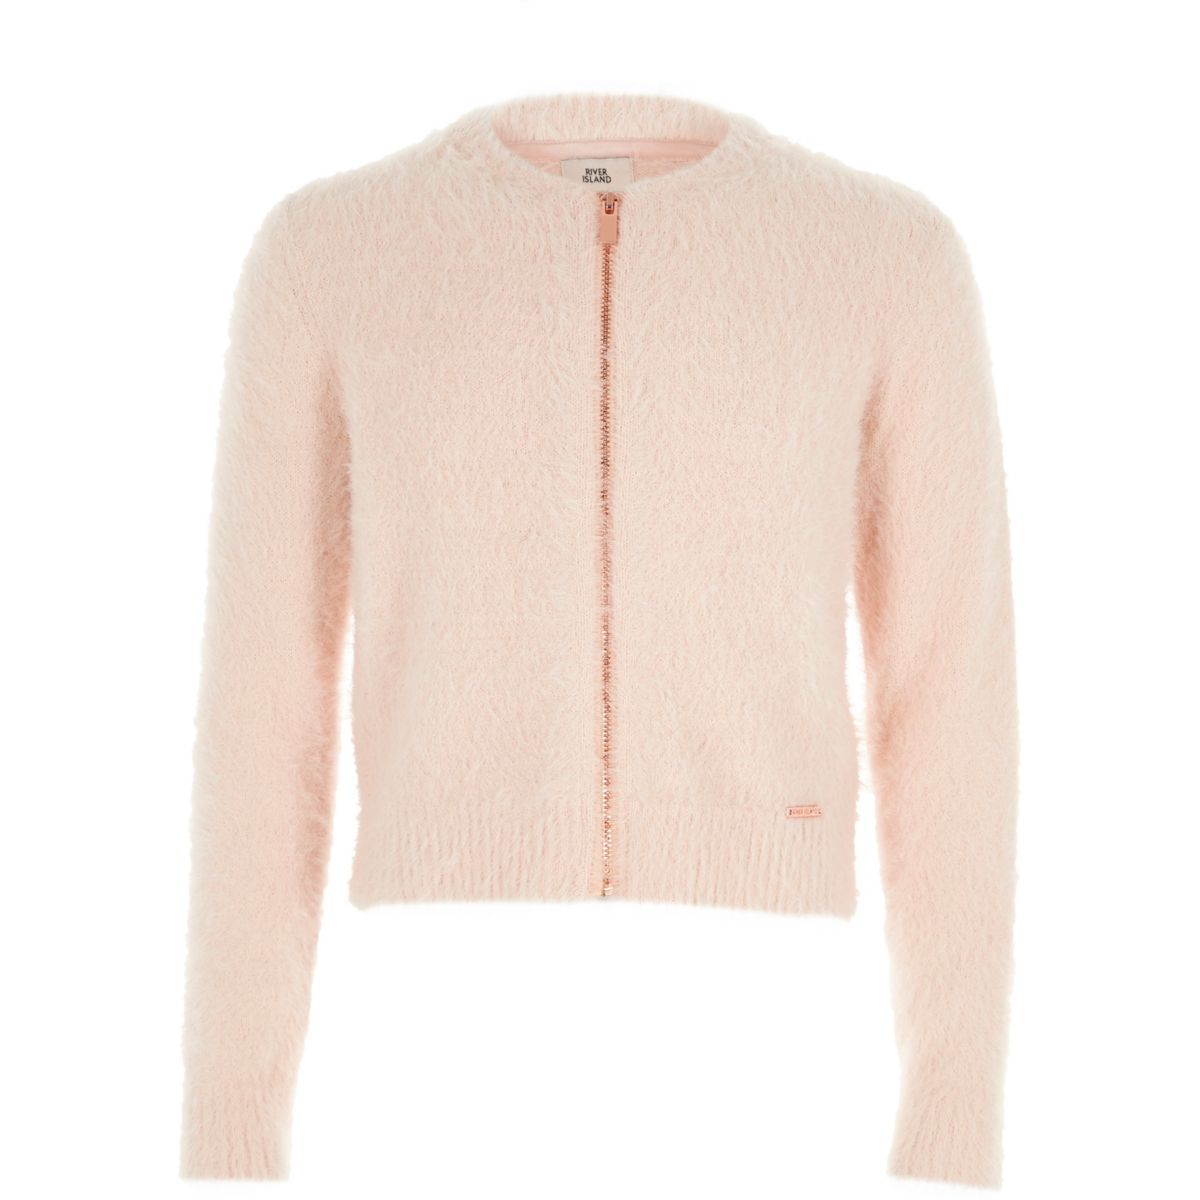 Girls light pink zip-up fluffy knit cardigan - Tops - Sale - girls